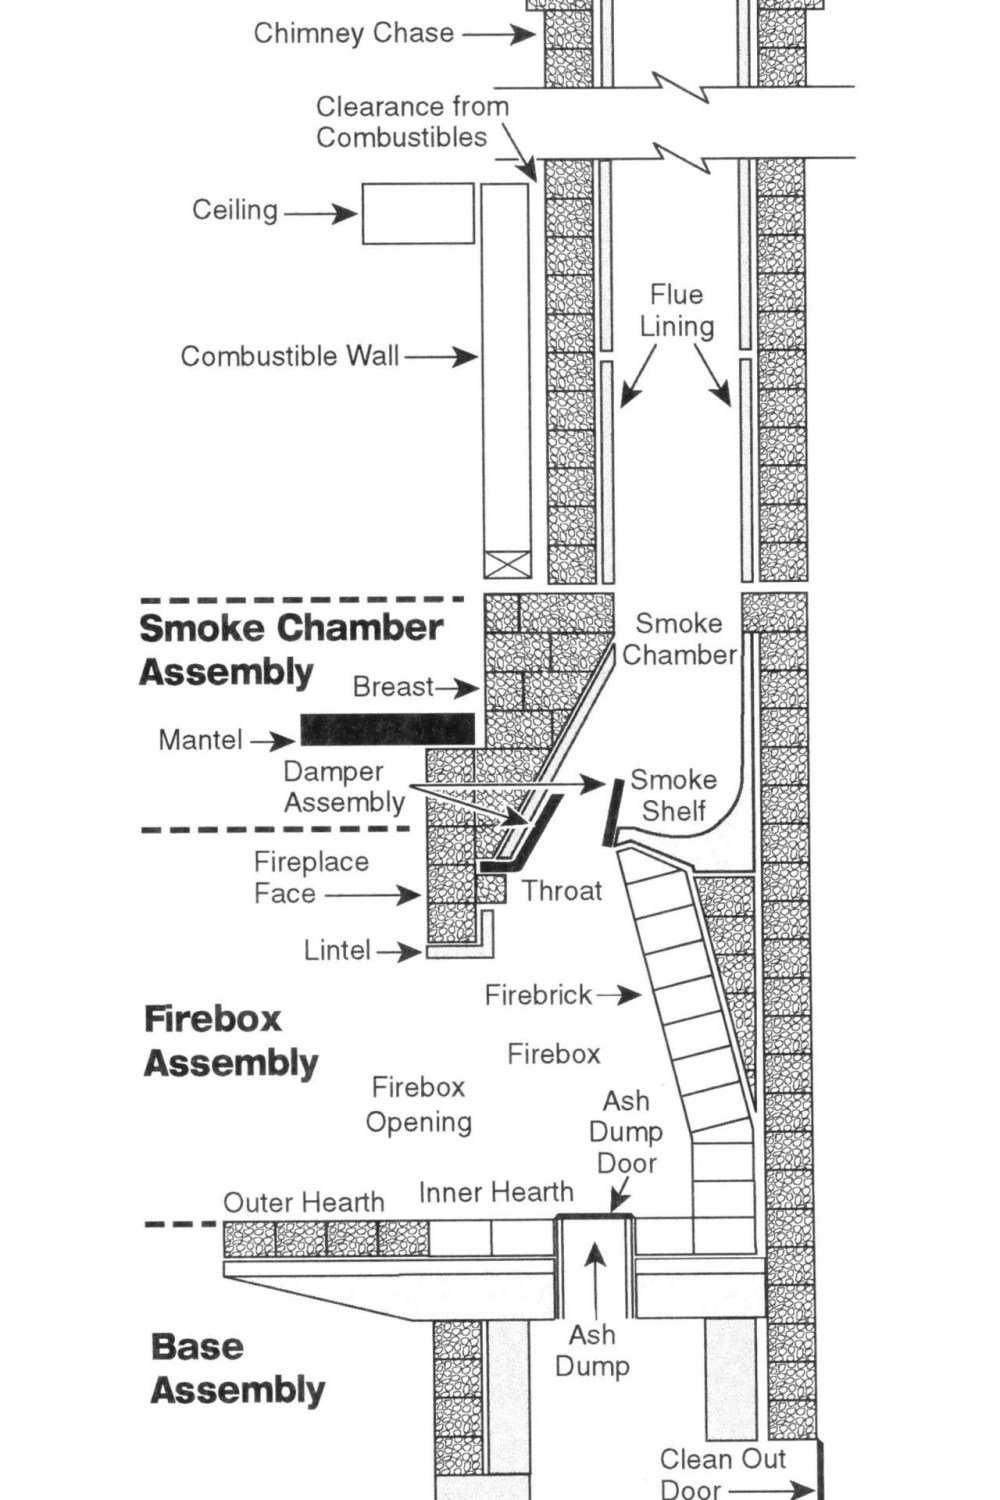 medium resolution of diagram of fireplace and chimney